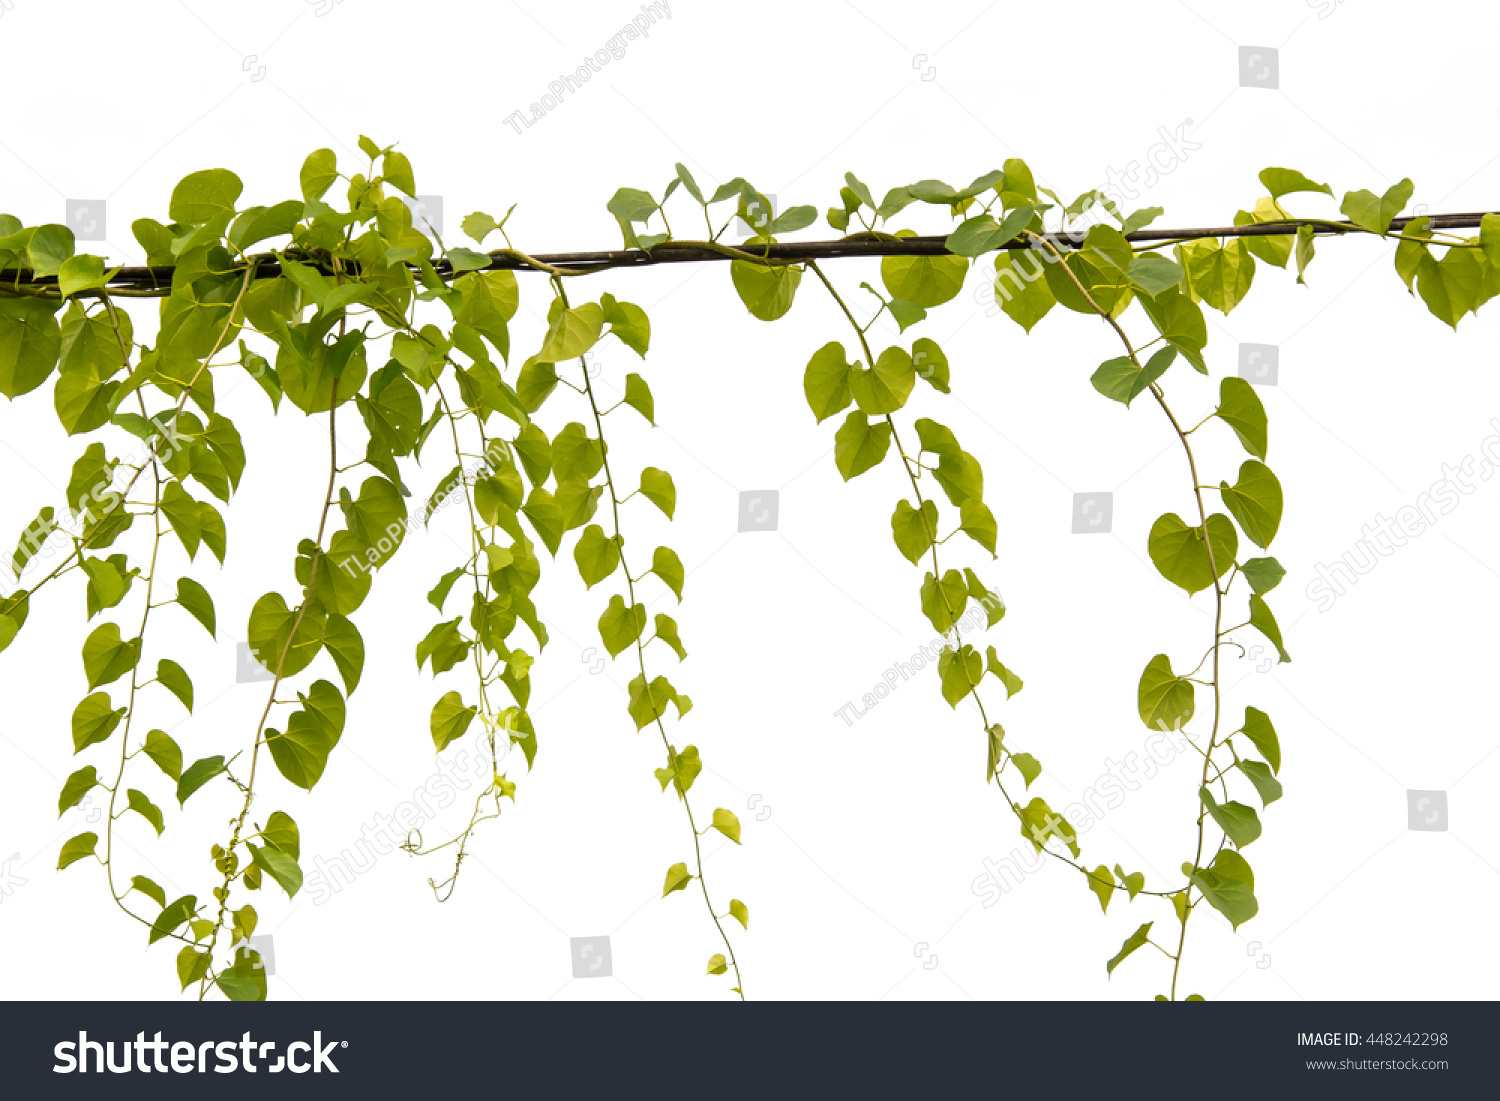 Ivy Tree Isolate White Color Background Stock Photo (Safe to Use ...